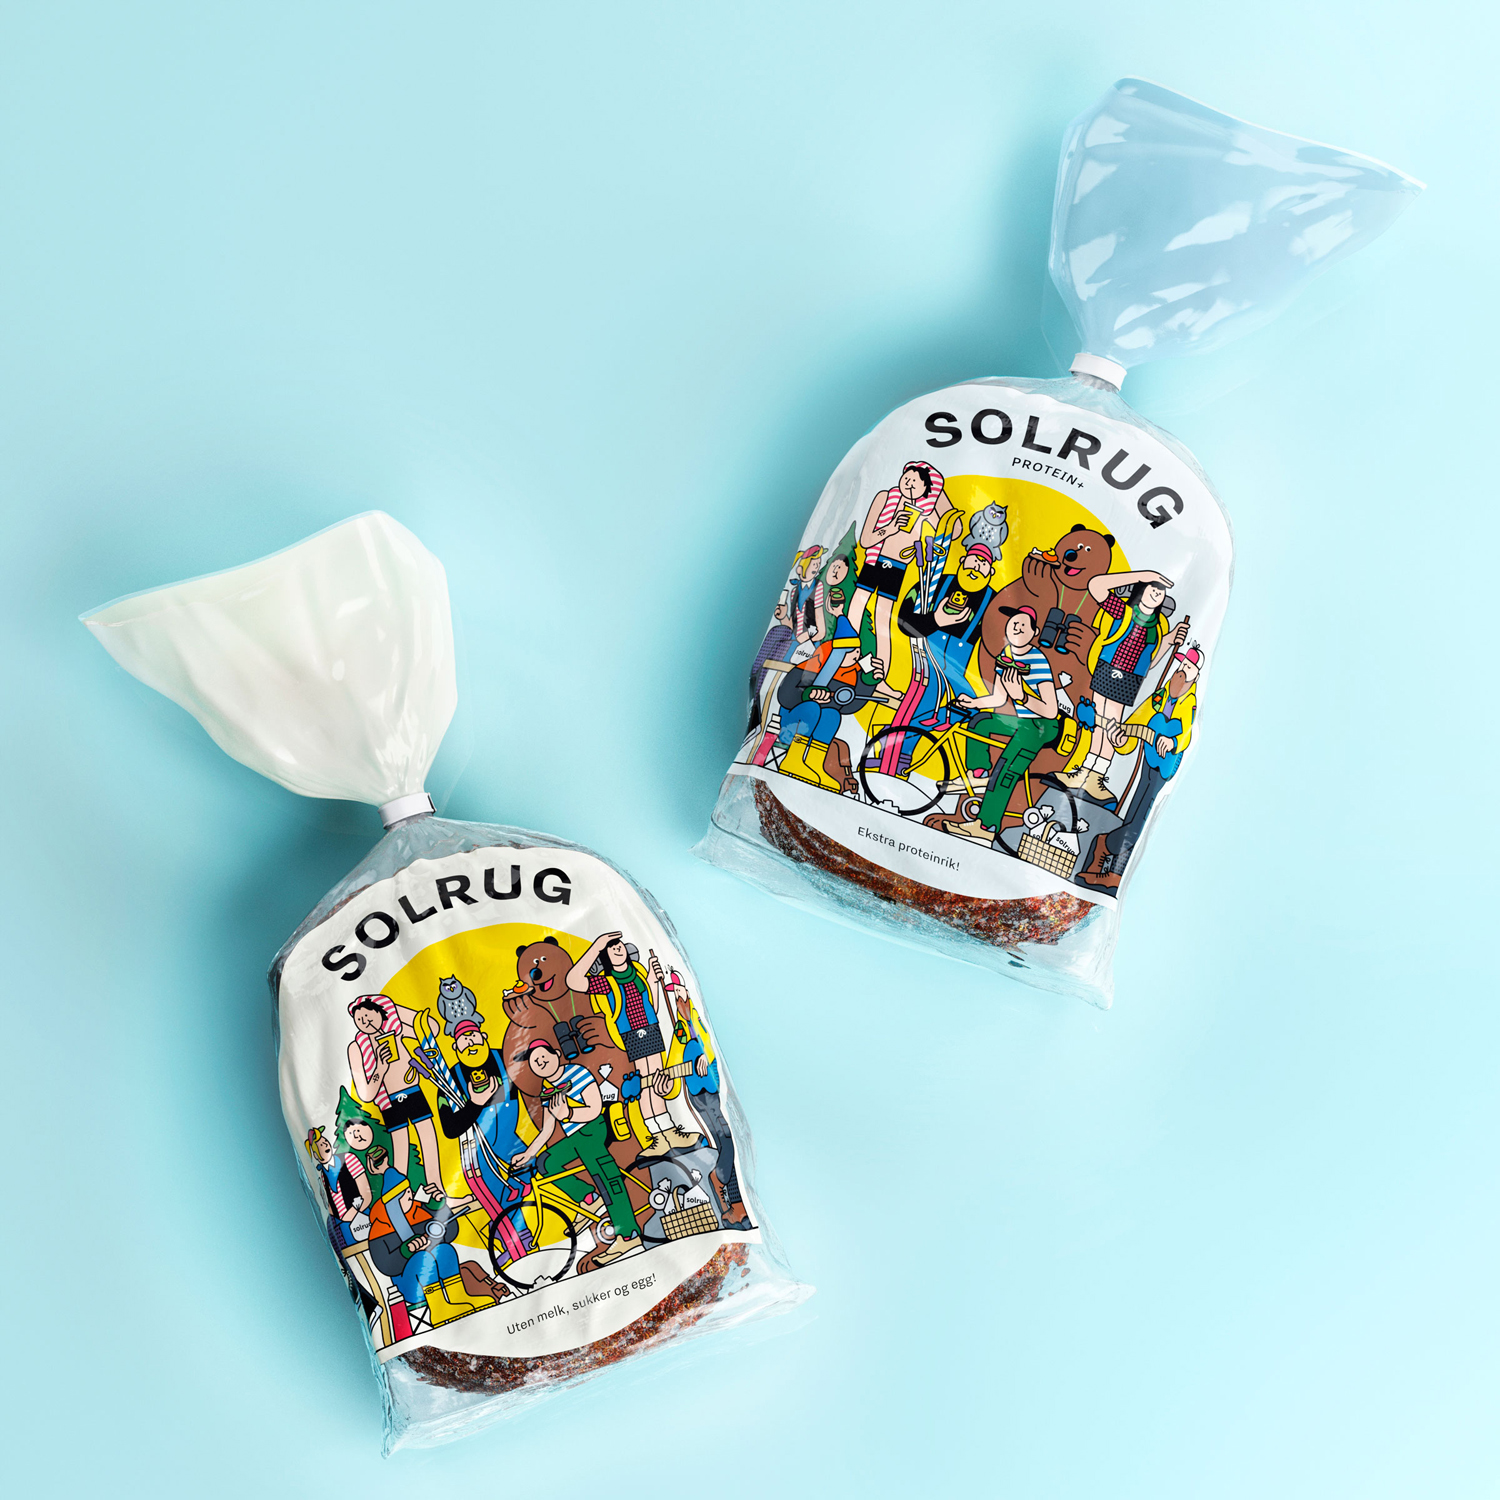 Package design for Solrug by Bielke & Yang, Norway, featuring illustration by Rami Niemi, Finland